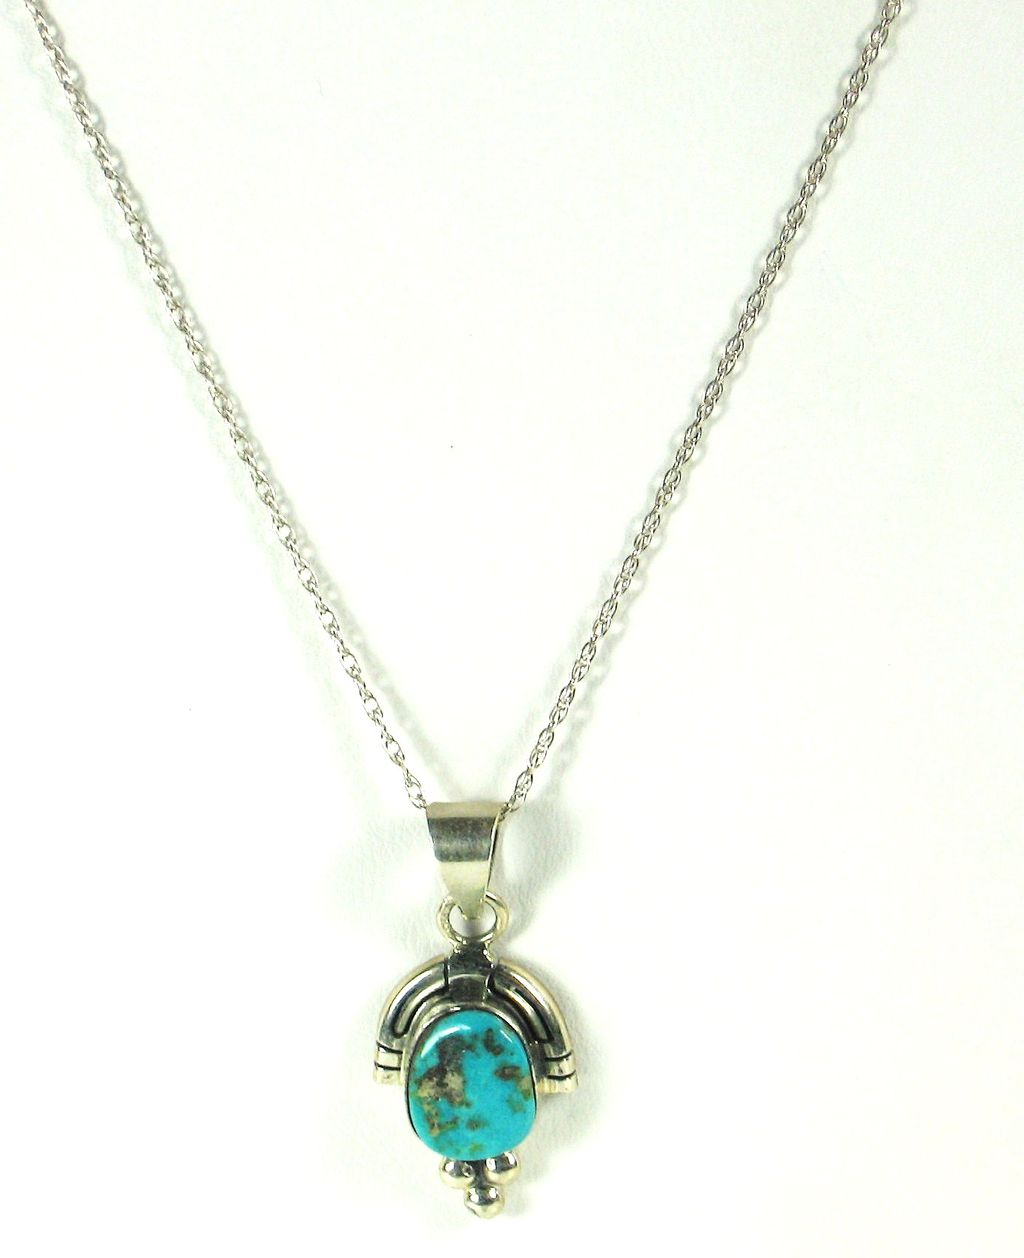 Francis 925 Sterling and Veined Turquoise Necklace